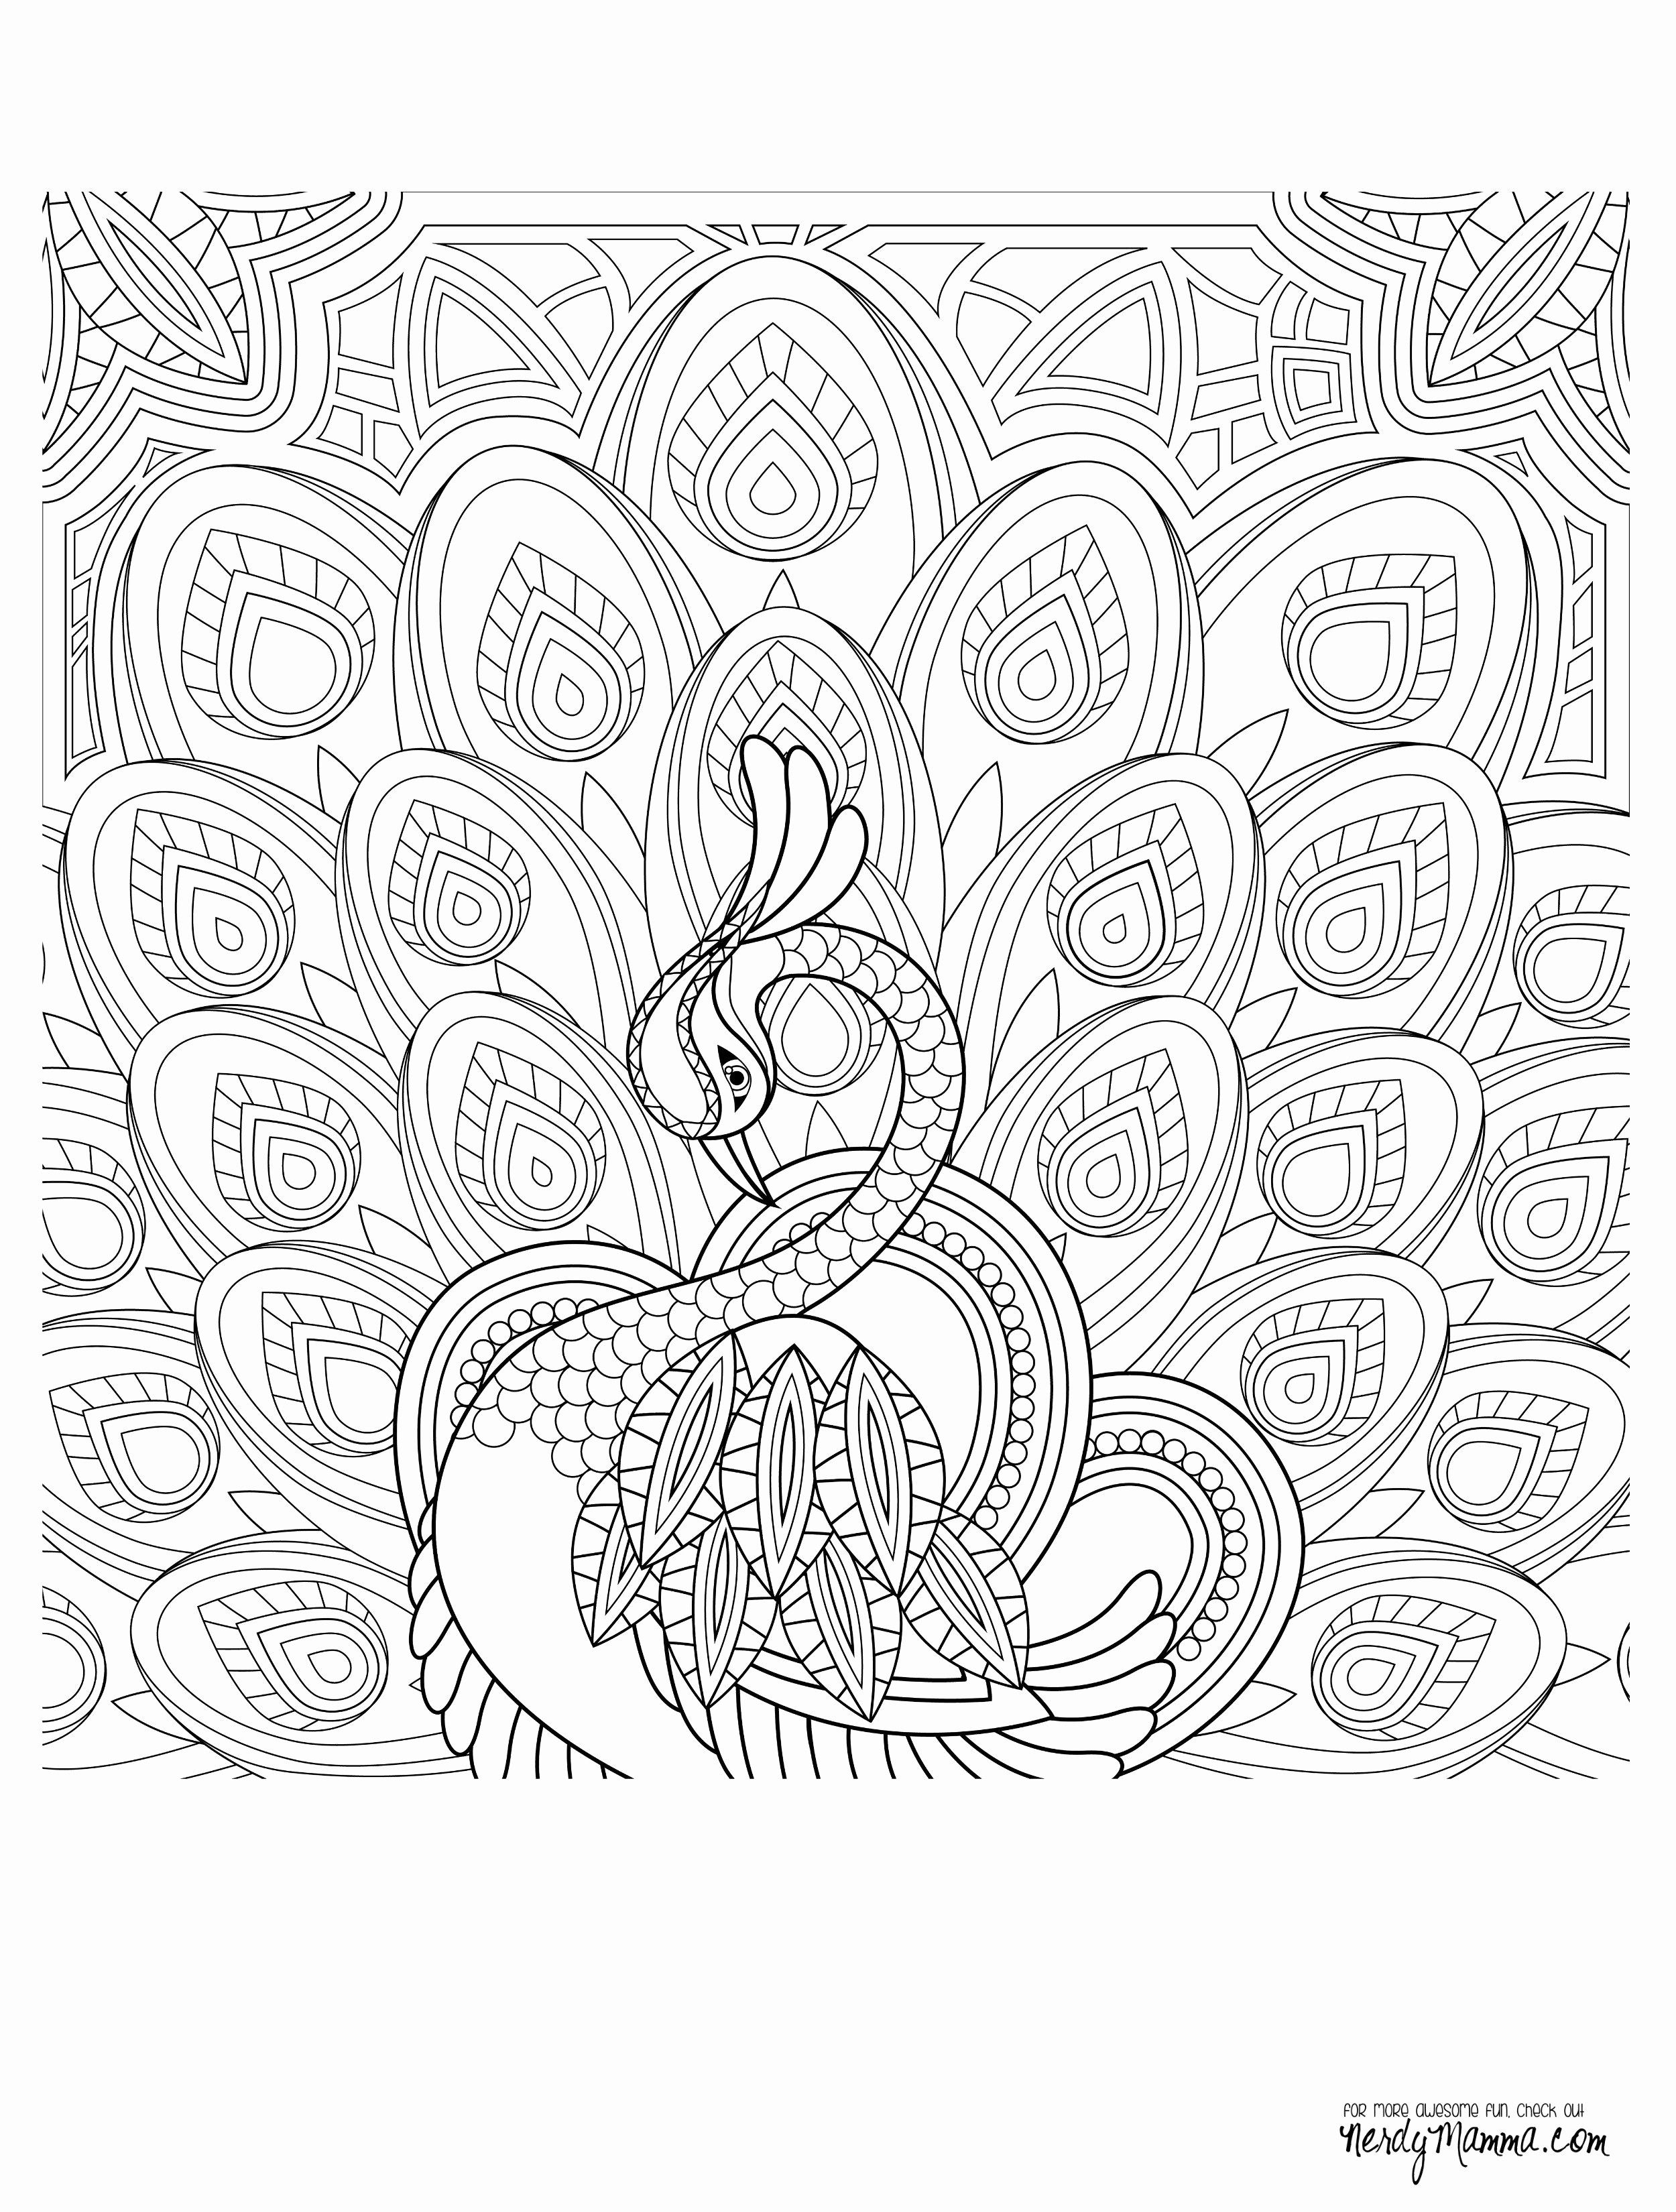 Make Your Own Coloring Pages From Photos Free  Collection 20c - Free Download